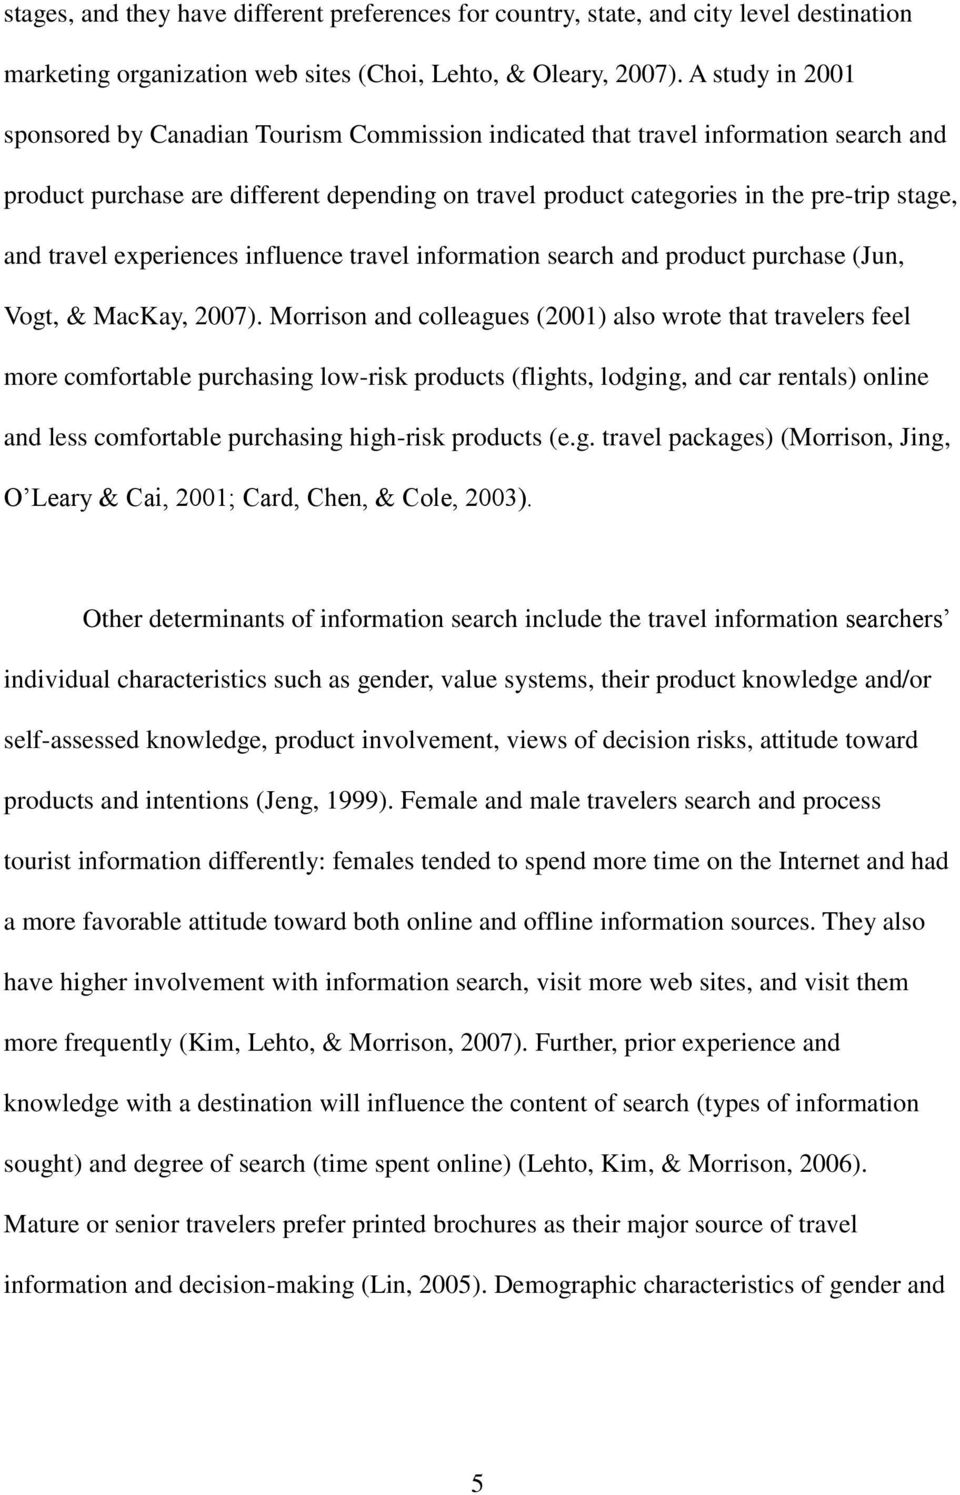 travel experiences influence travel information search and product purchase (Jun, Vogt, & MacKay, 2007).